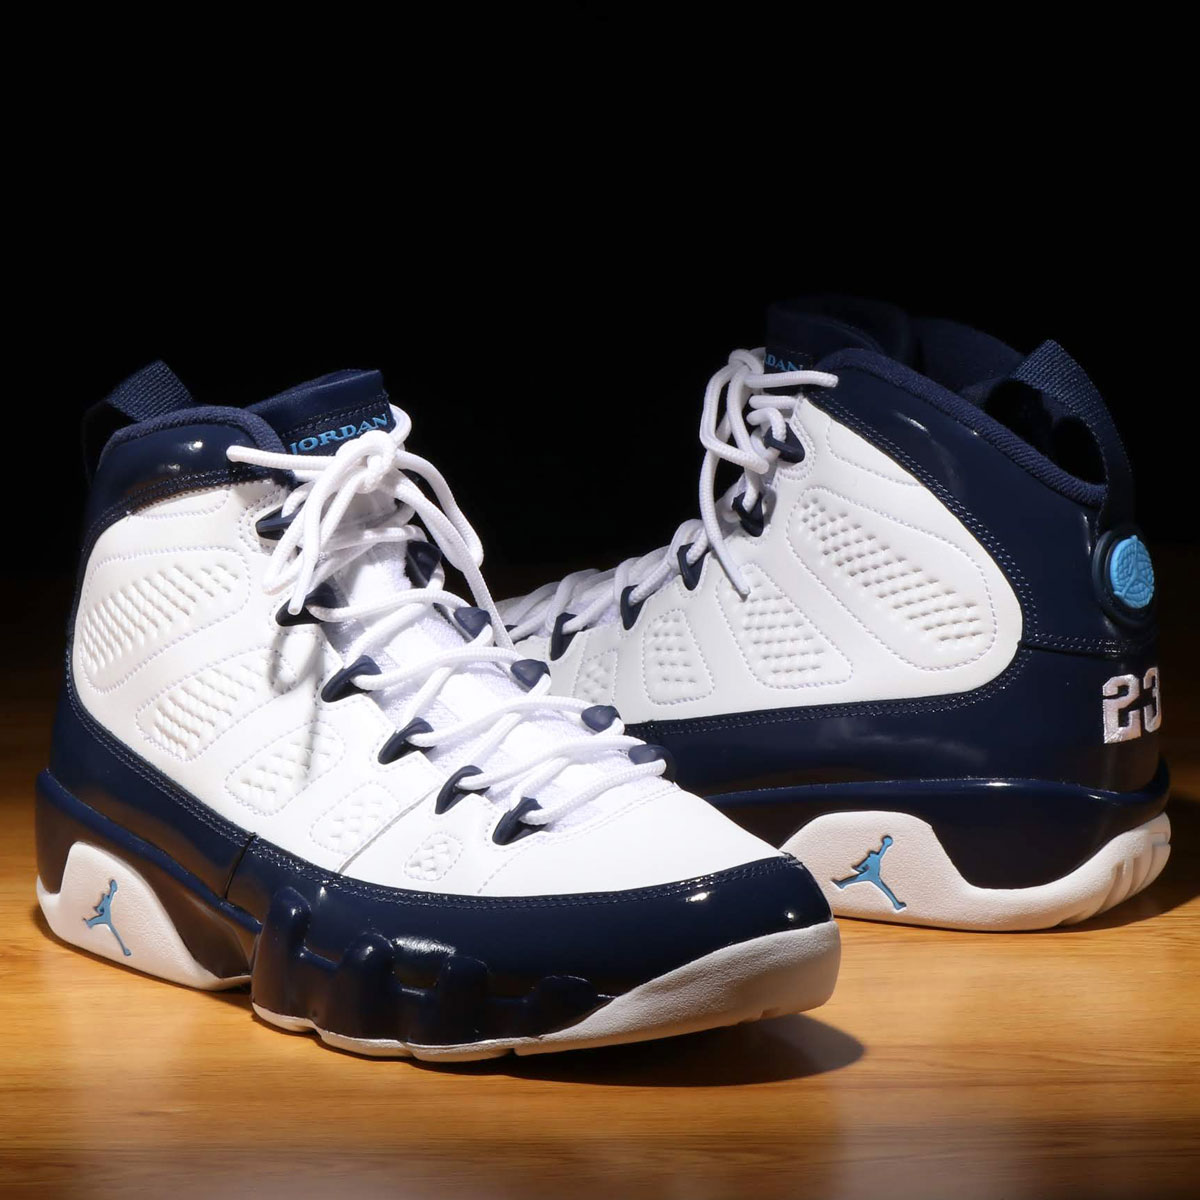 NIKE AIR JORDAN 9 RETRO (ナイキ エア ジョーダン 9 レトロ)WHITE/UNIVERSITY BLUE-MIDNIGHT NAVY【メンズ スニーカー】19SP-I